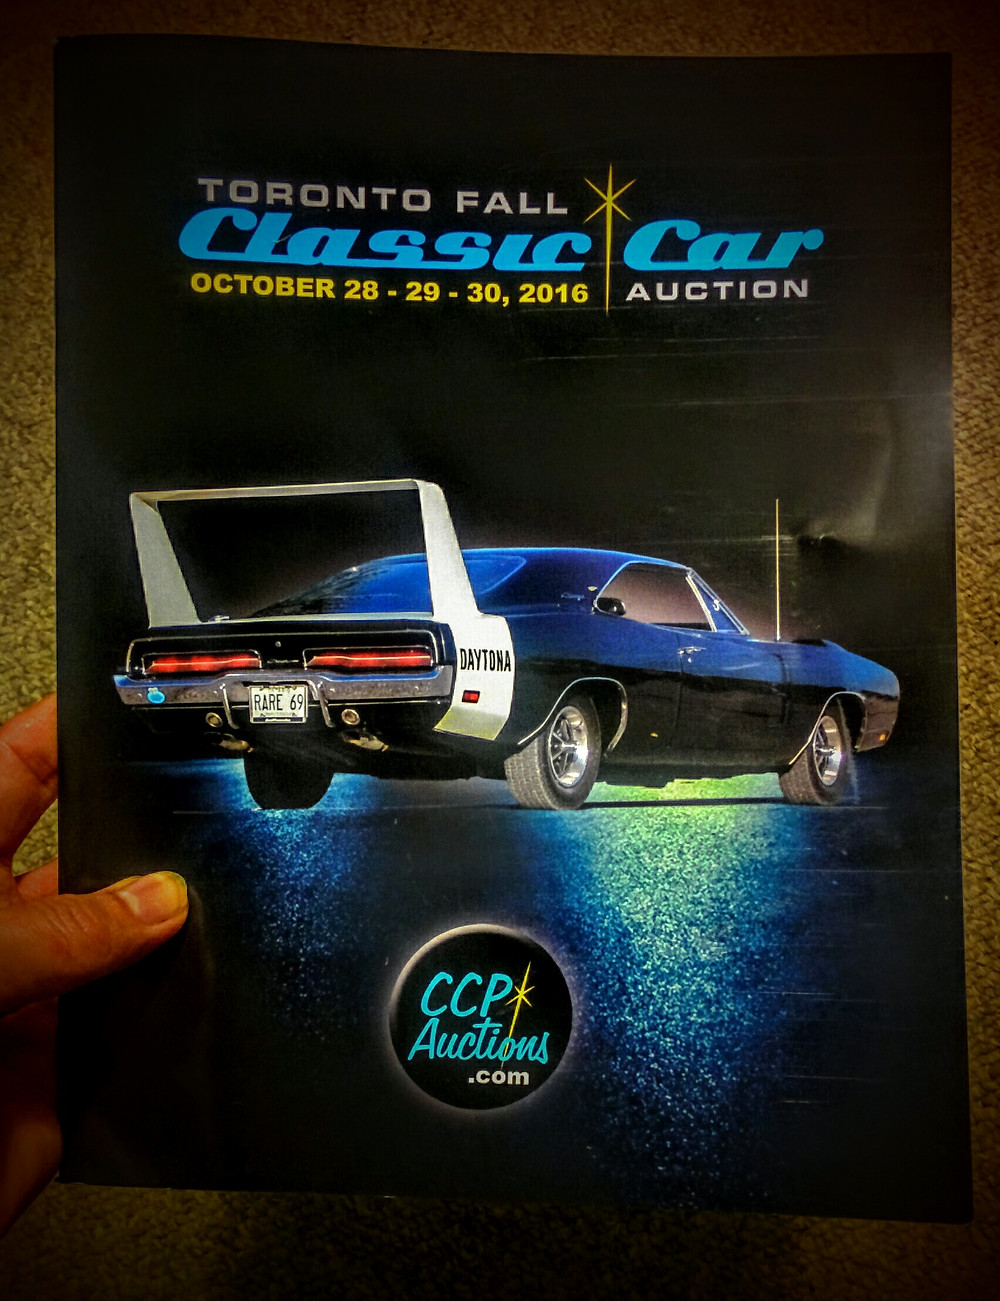 Photo of the catalog for this weekend's Fall Classic Car Auction of Toronto, produced by CCP Auctions.